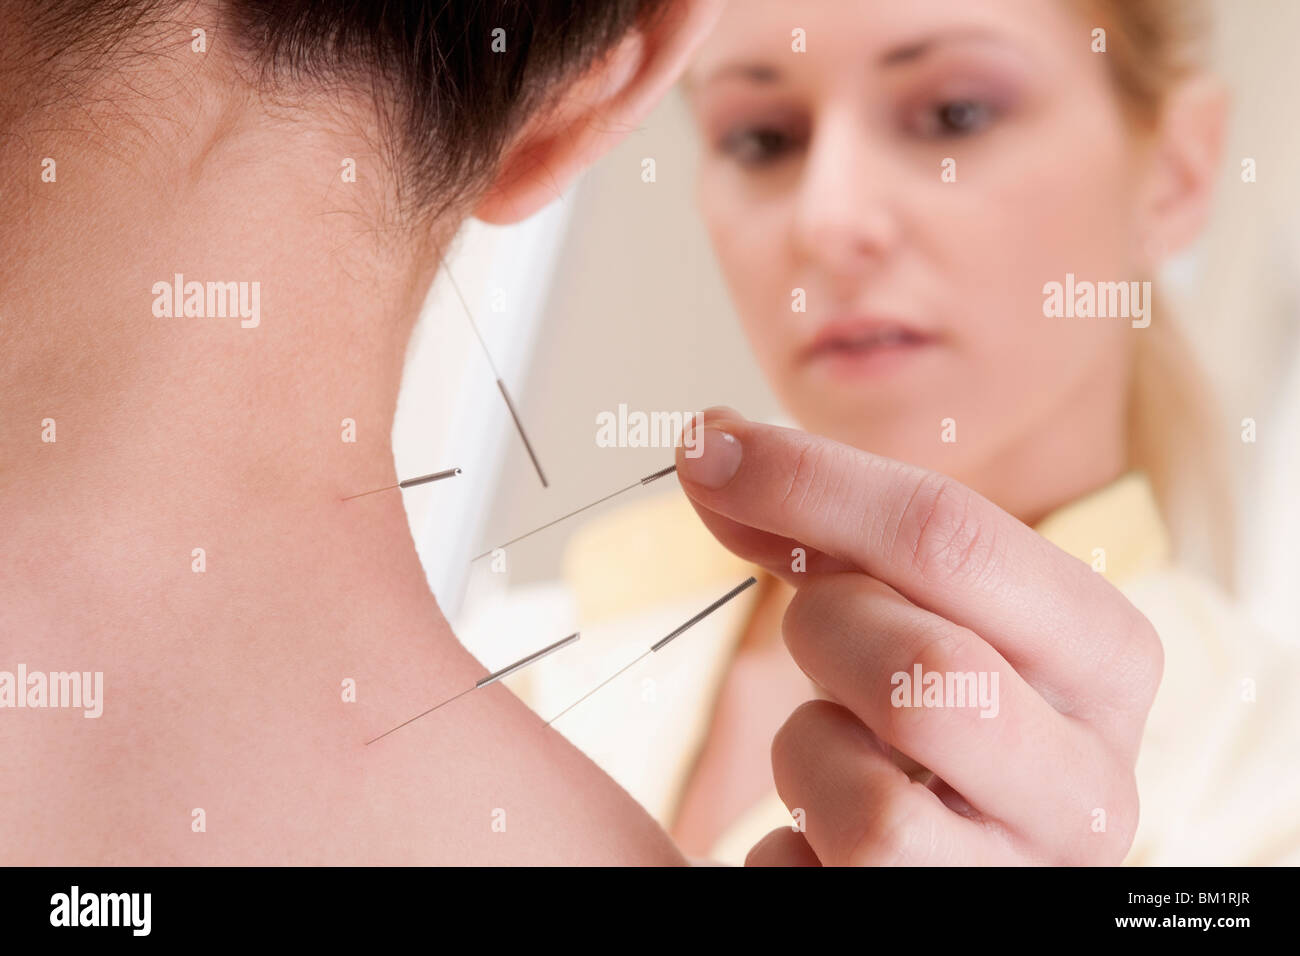 Acupuncturist applying needles on a person's back - Stock Image